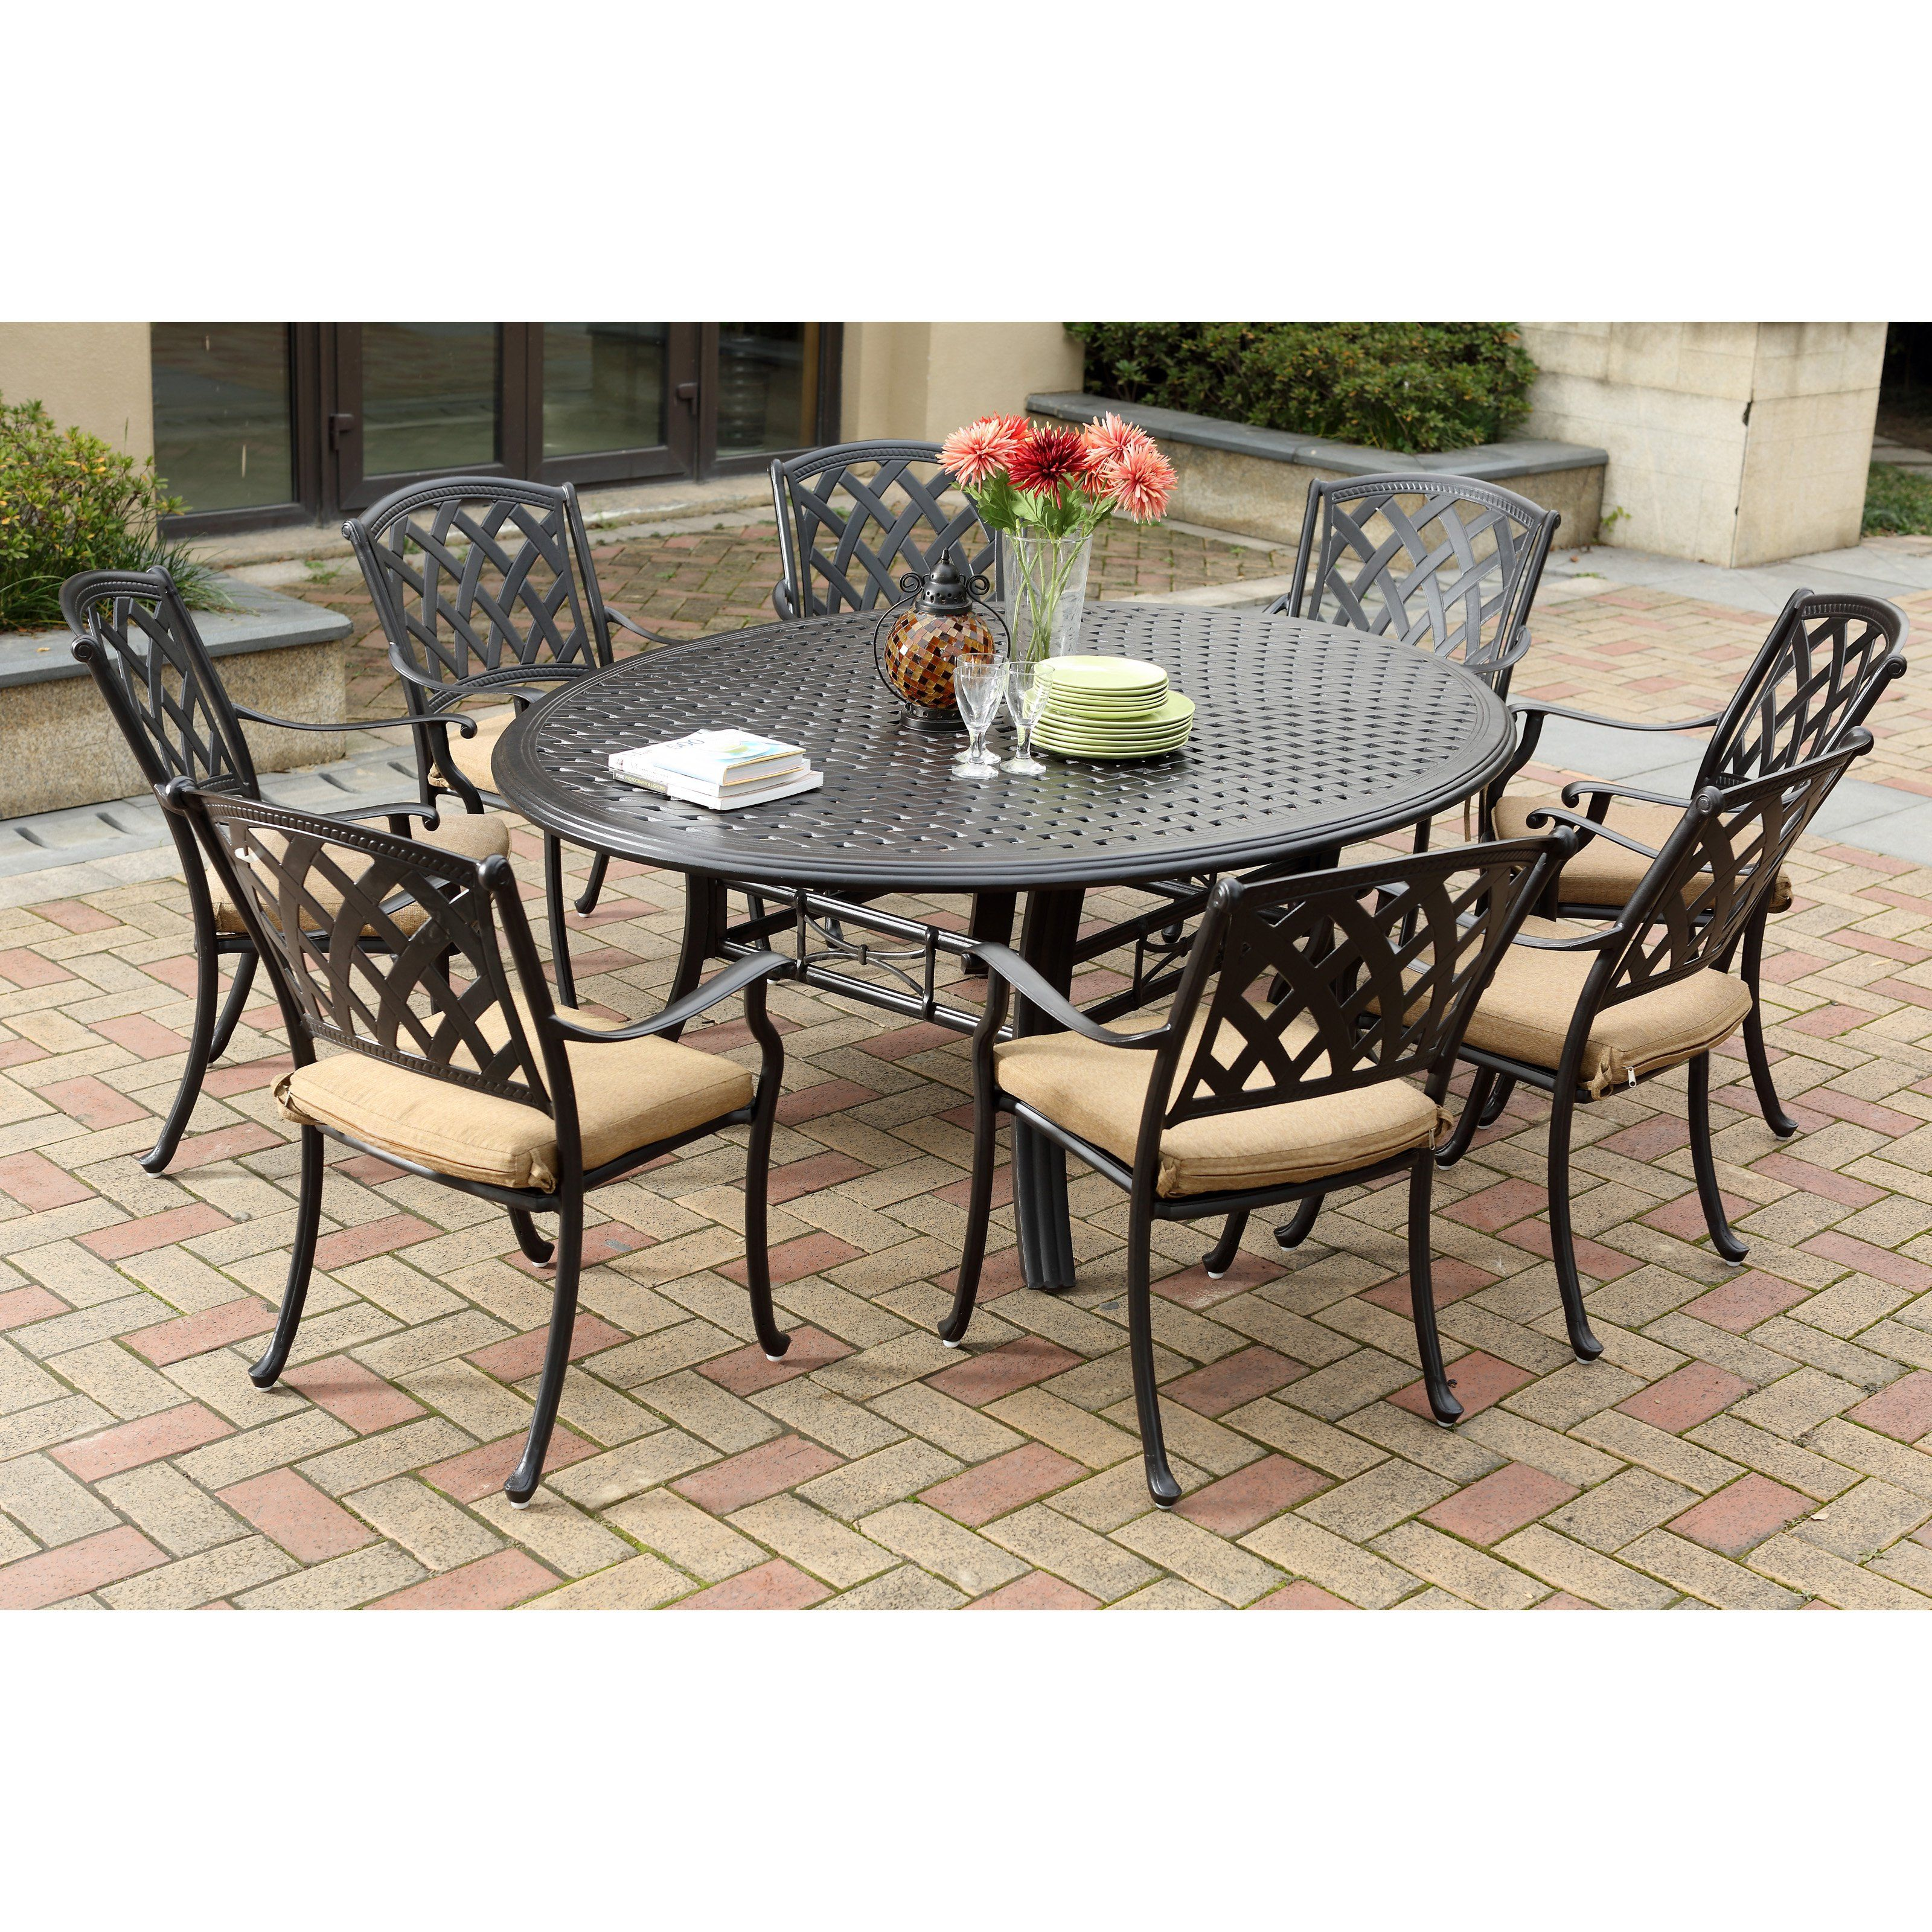 sunbrella set square cast patio with dining ab aluminum p oakland sets living piece cushions